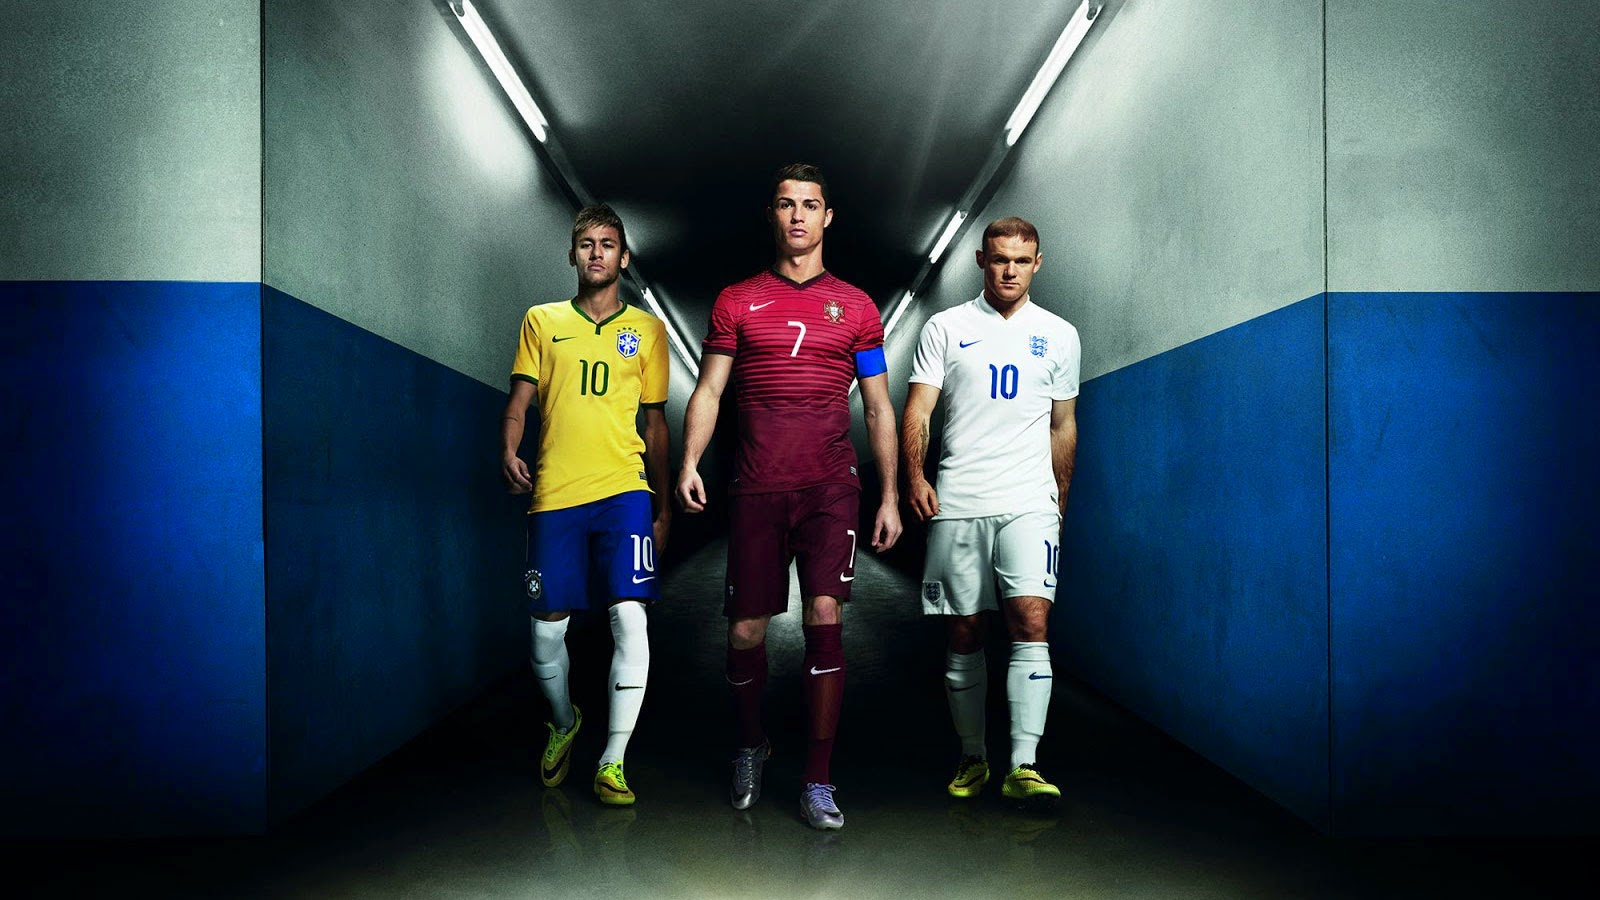 Music: Commercial for Nike Football Combines | Wallpaper ...